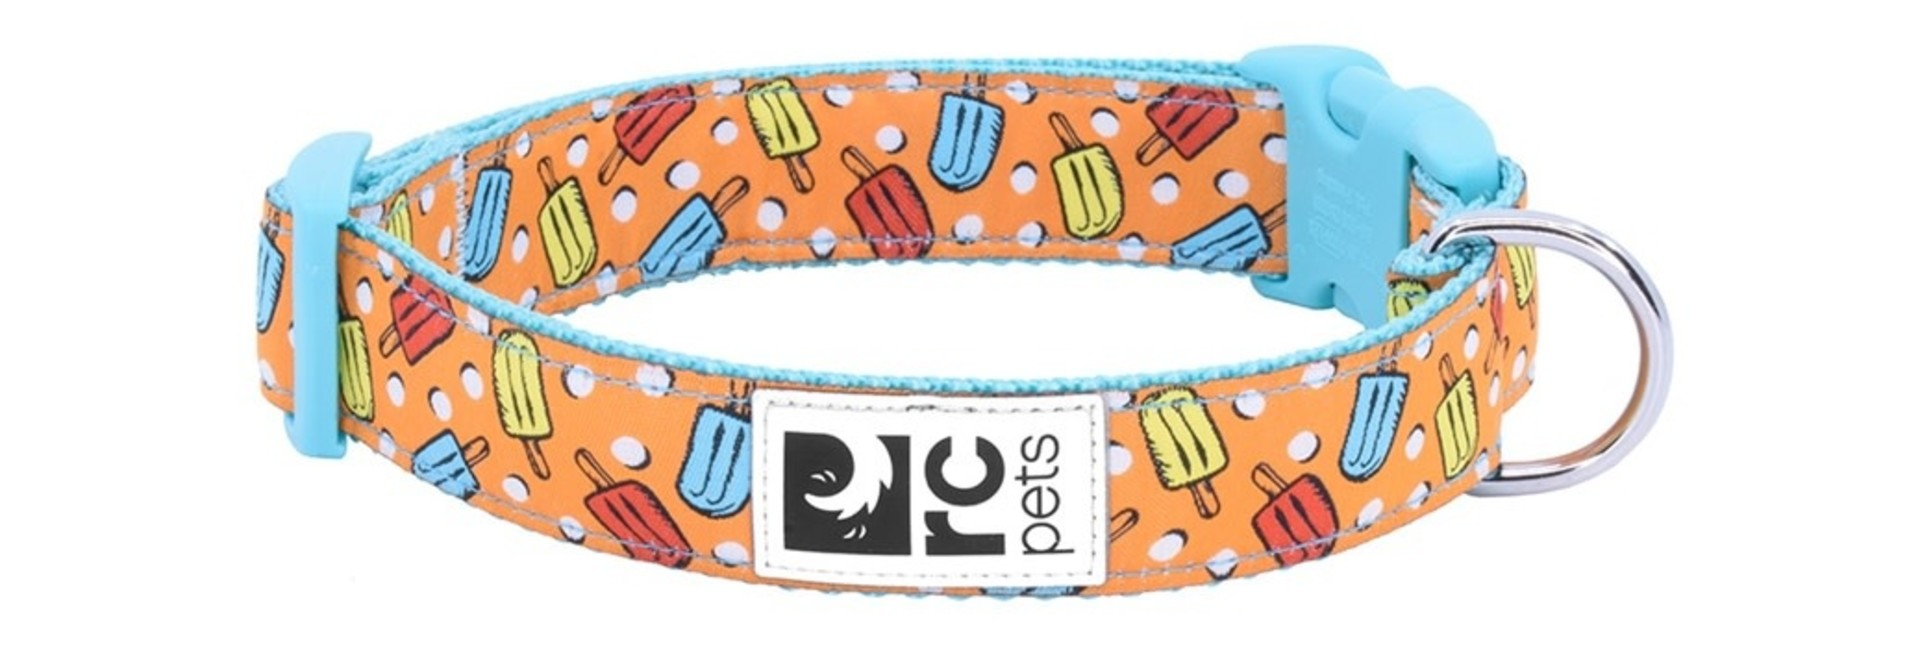 Clip Collar - Popsicle